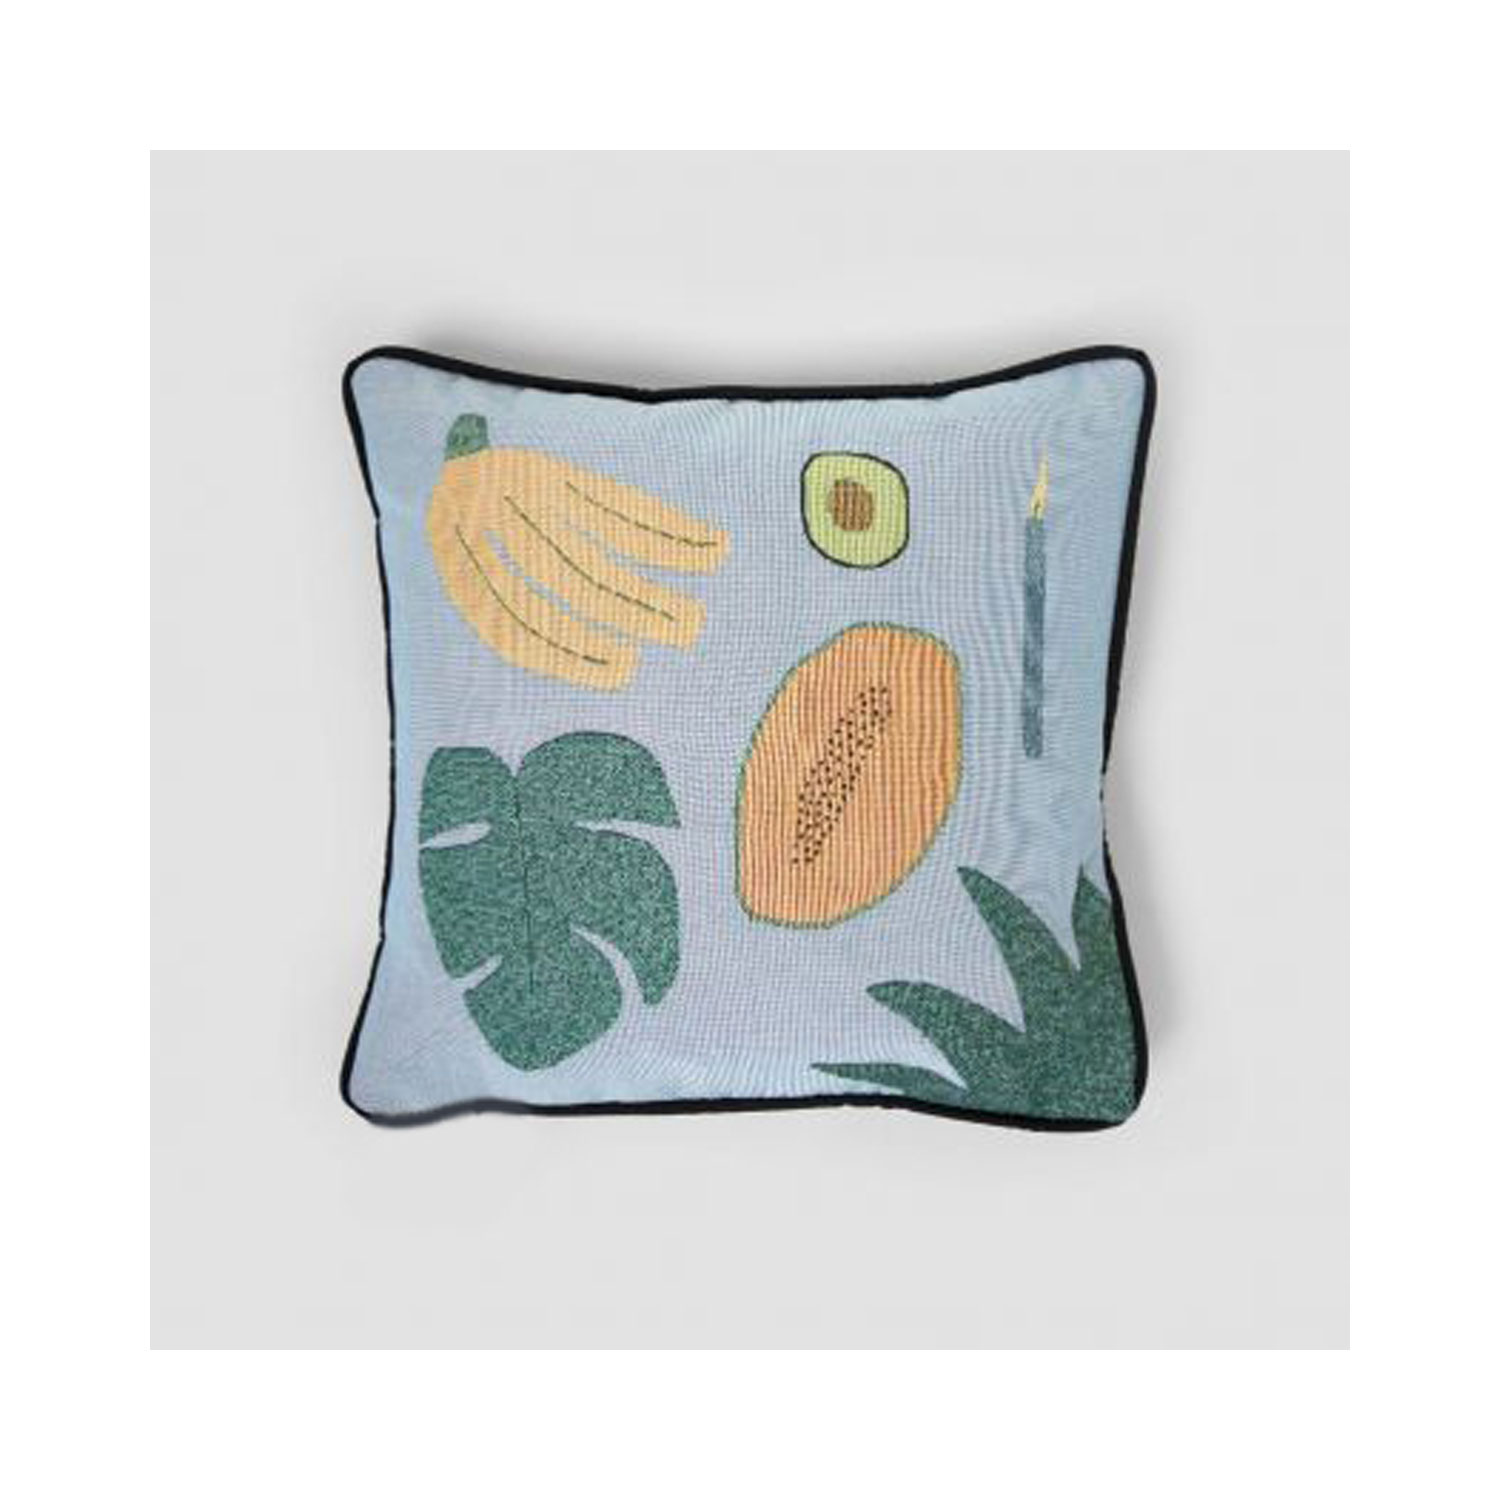 FRUIT COVER PILLOW BY BFGF